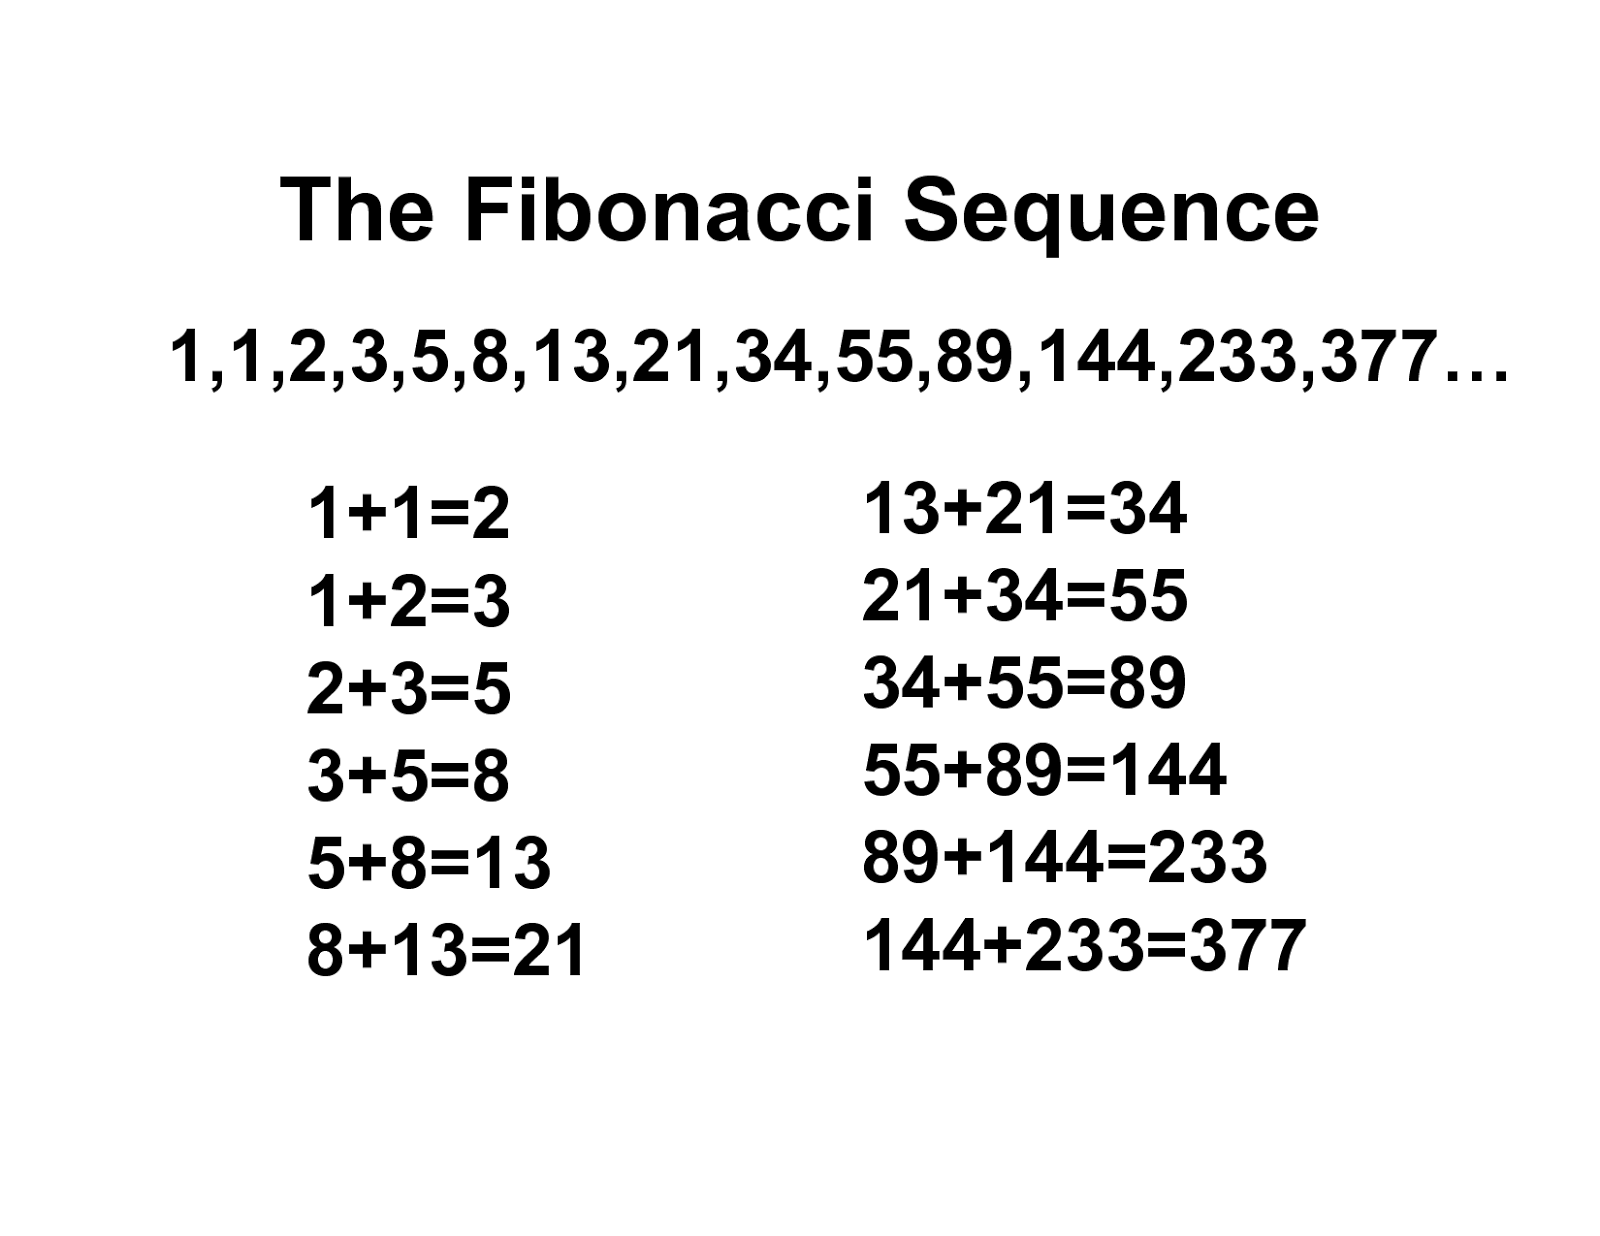 Fibonacci series program in C